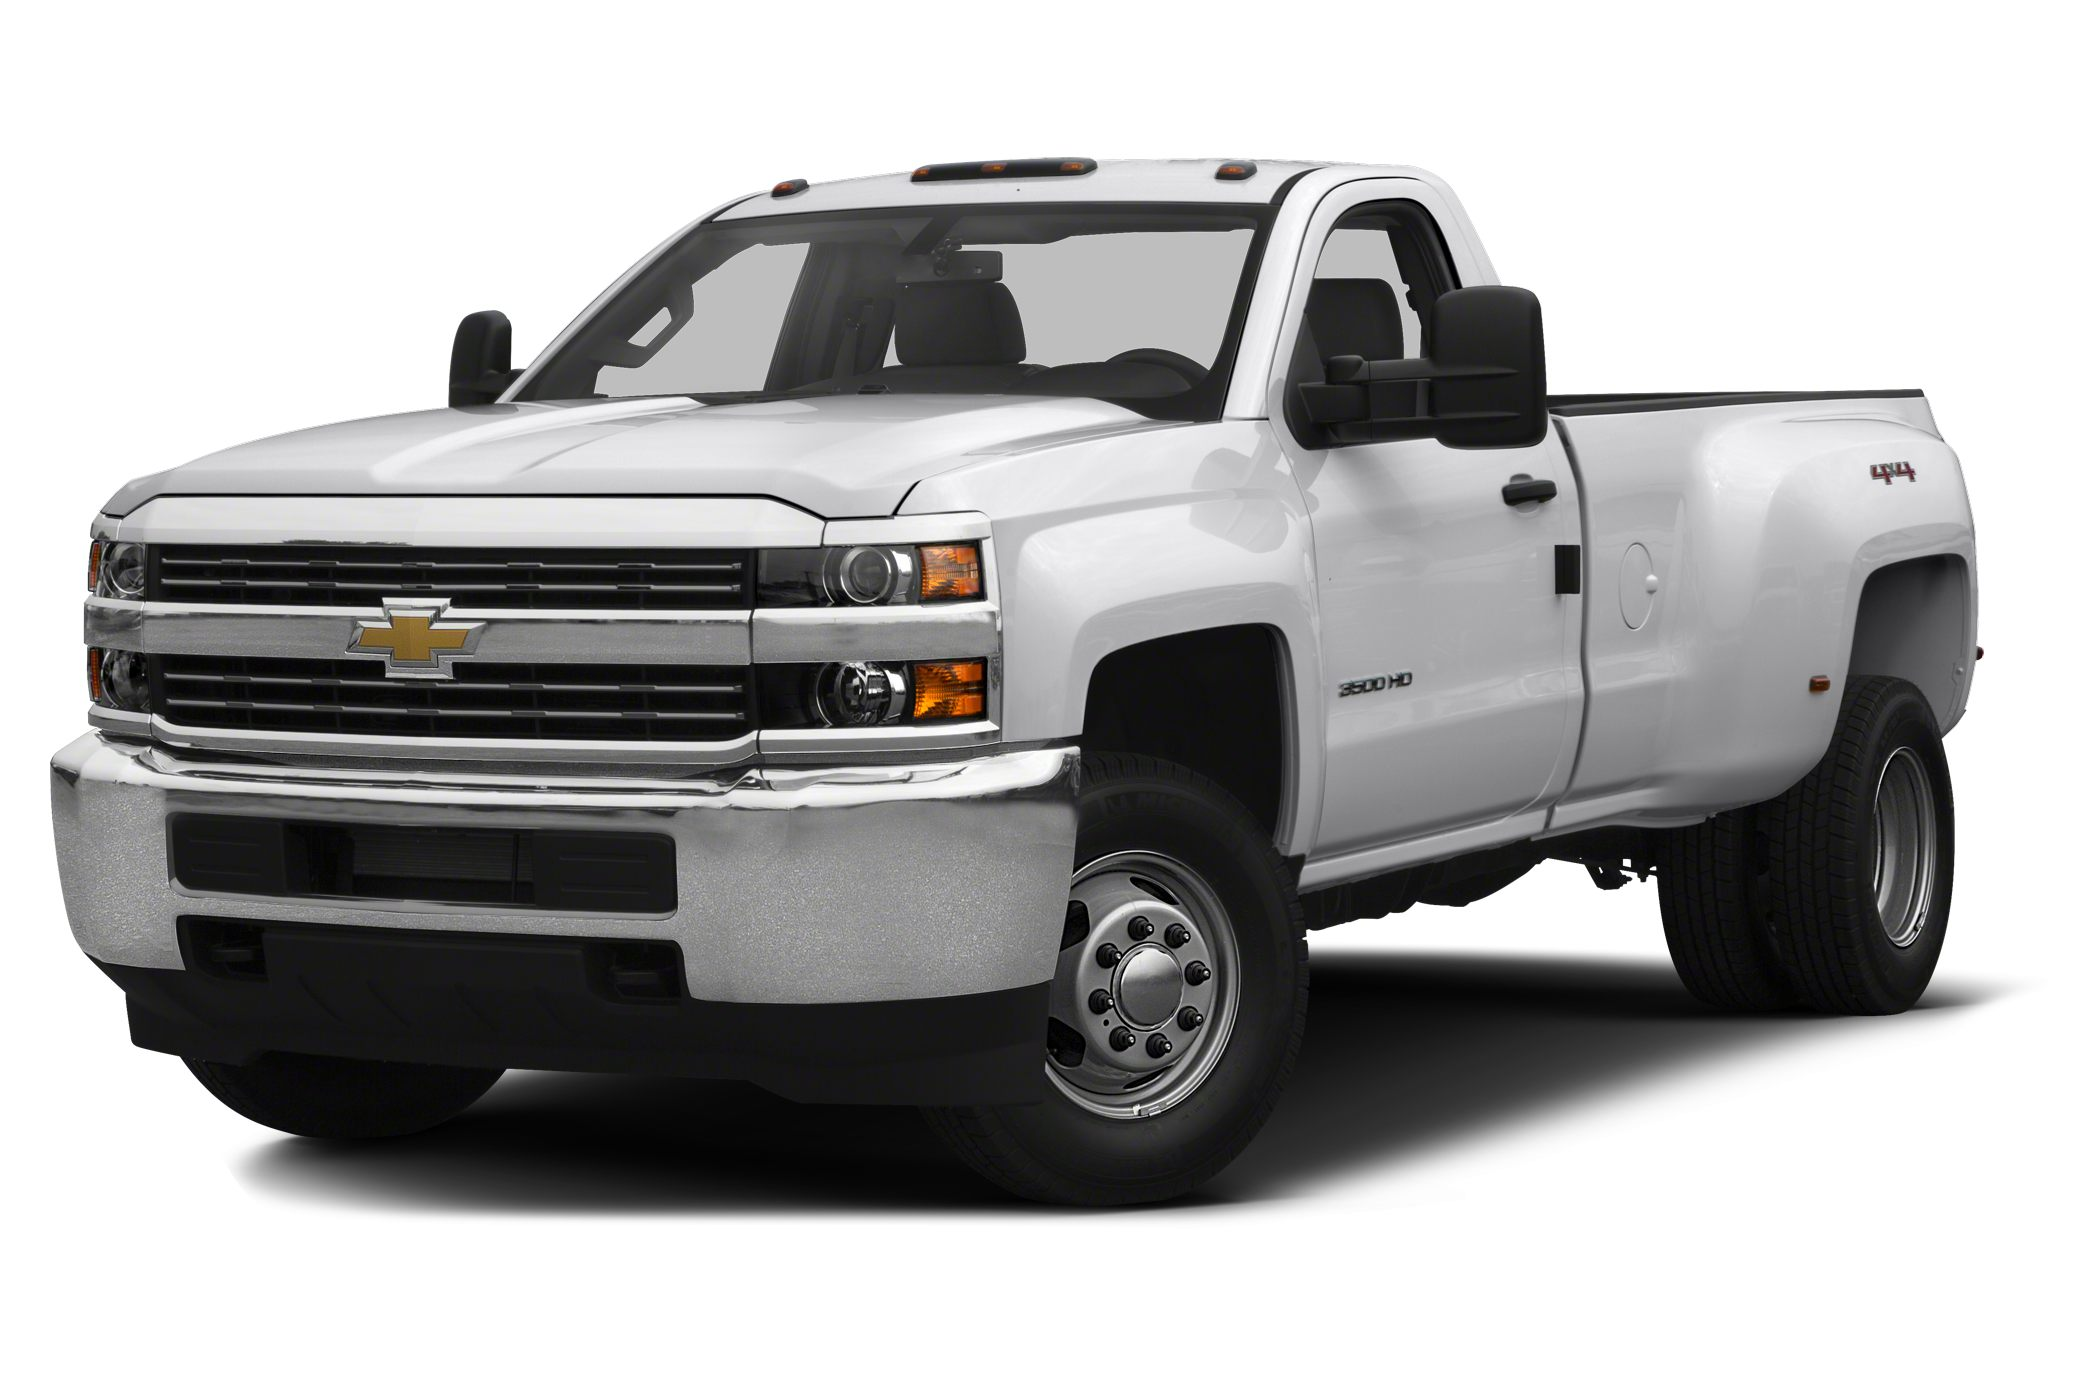 2016 chevrolet silverado 3500hd cng photo gallery autoblog. Black Bedroom Furniture Sets. Home Design Ideas